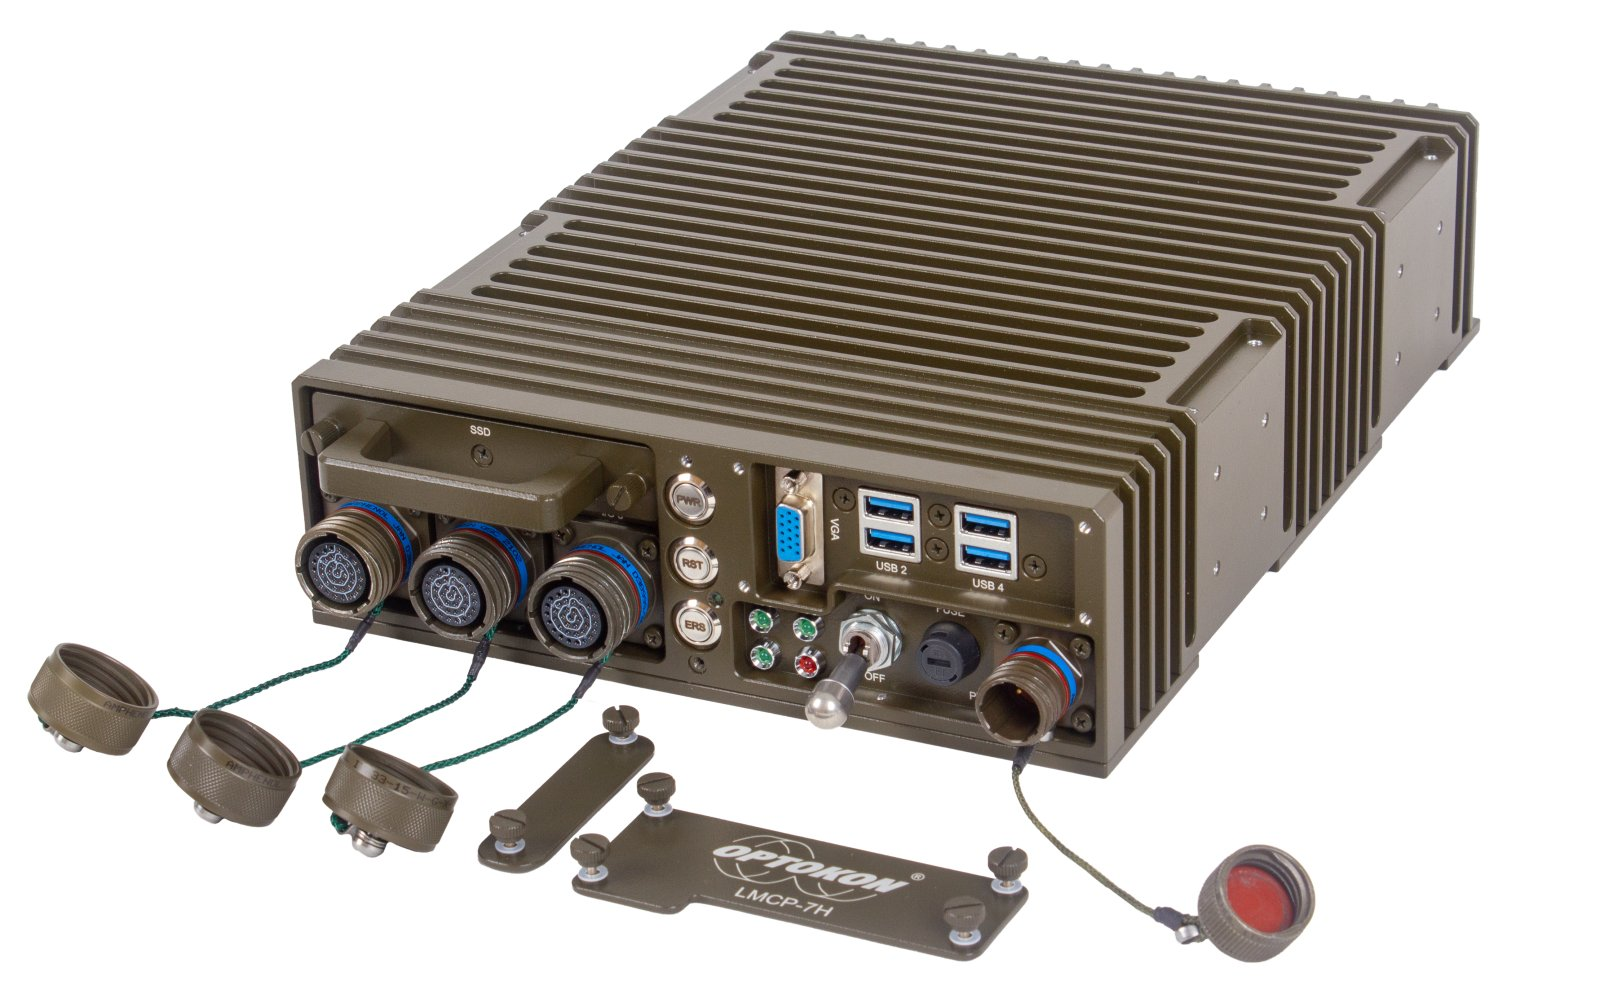 LMCP-7H Compact, ultra-durable server